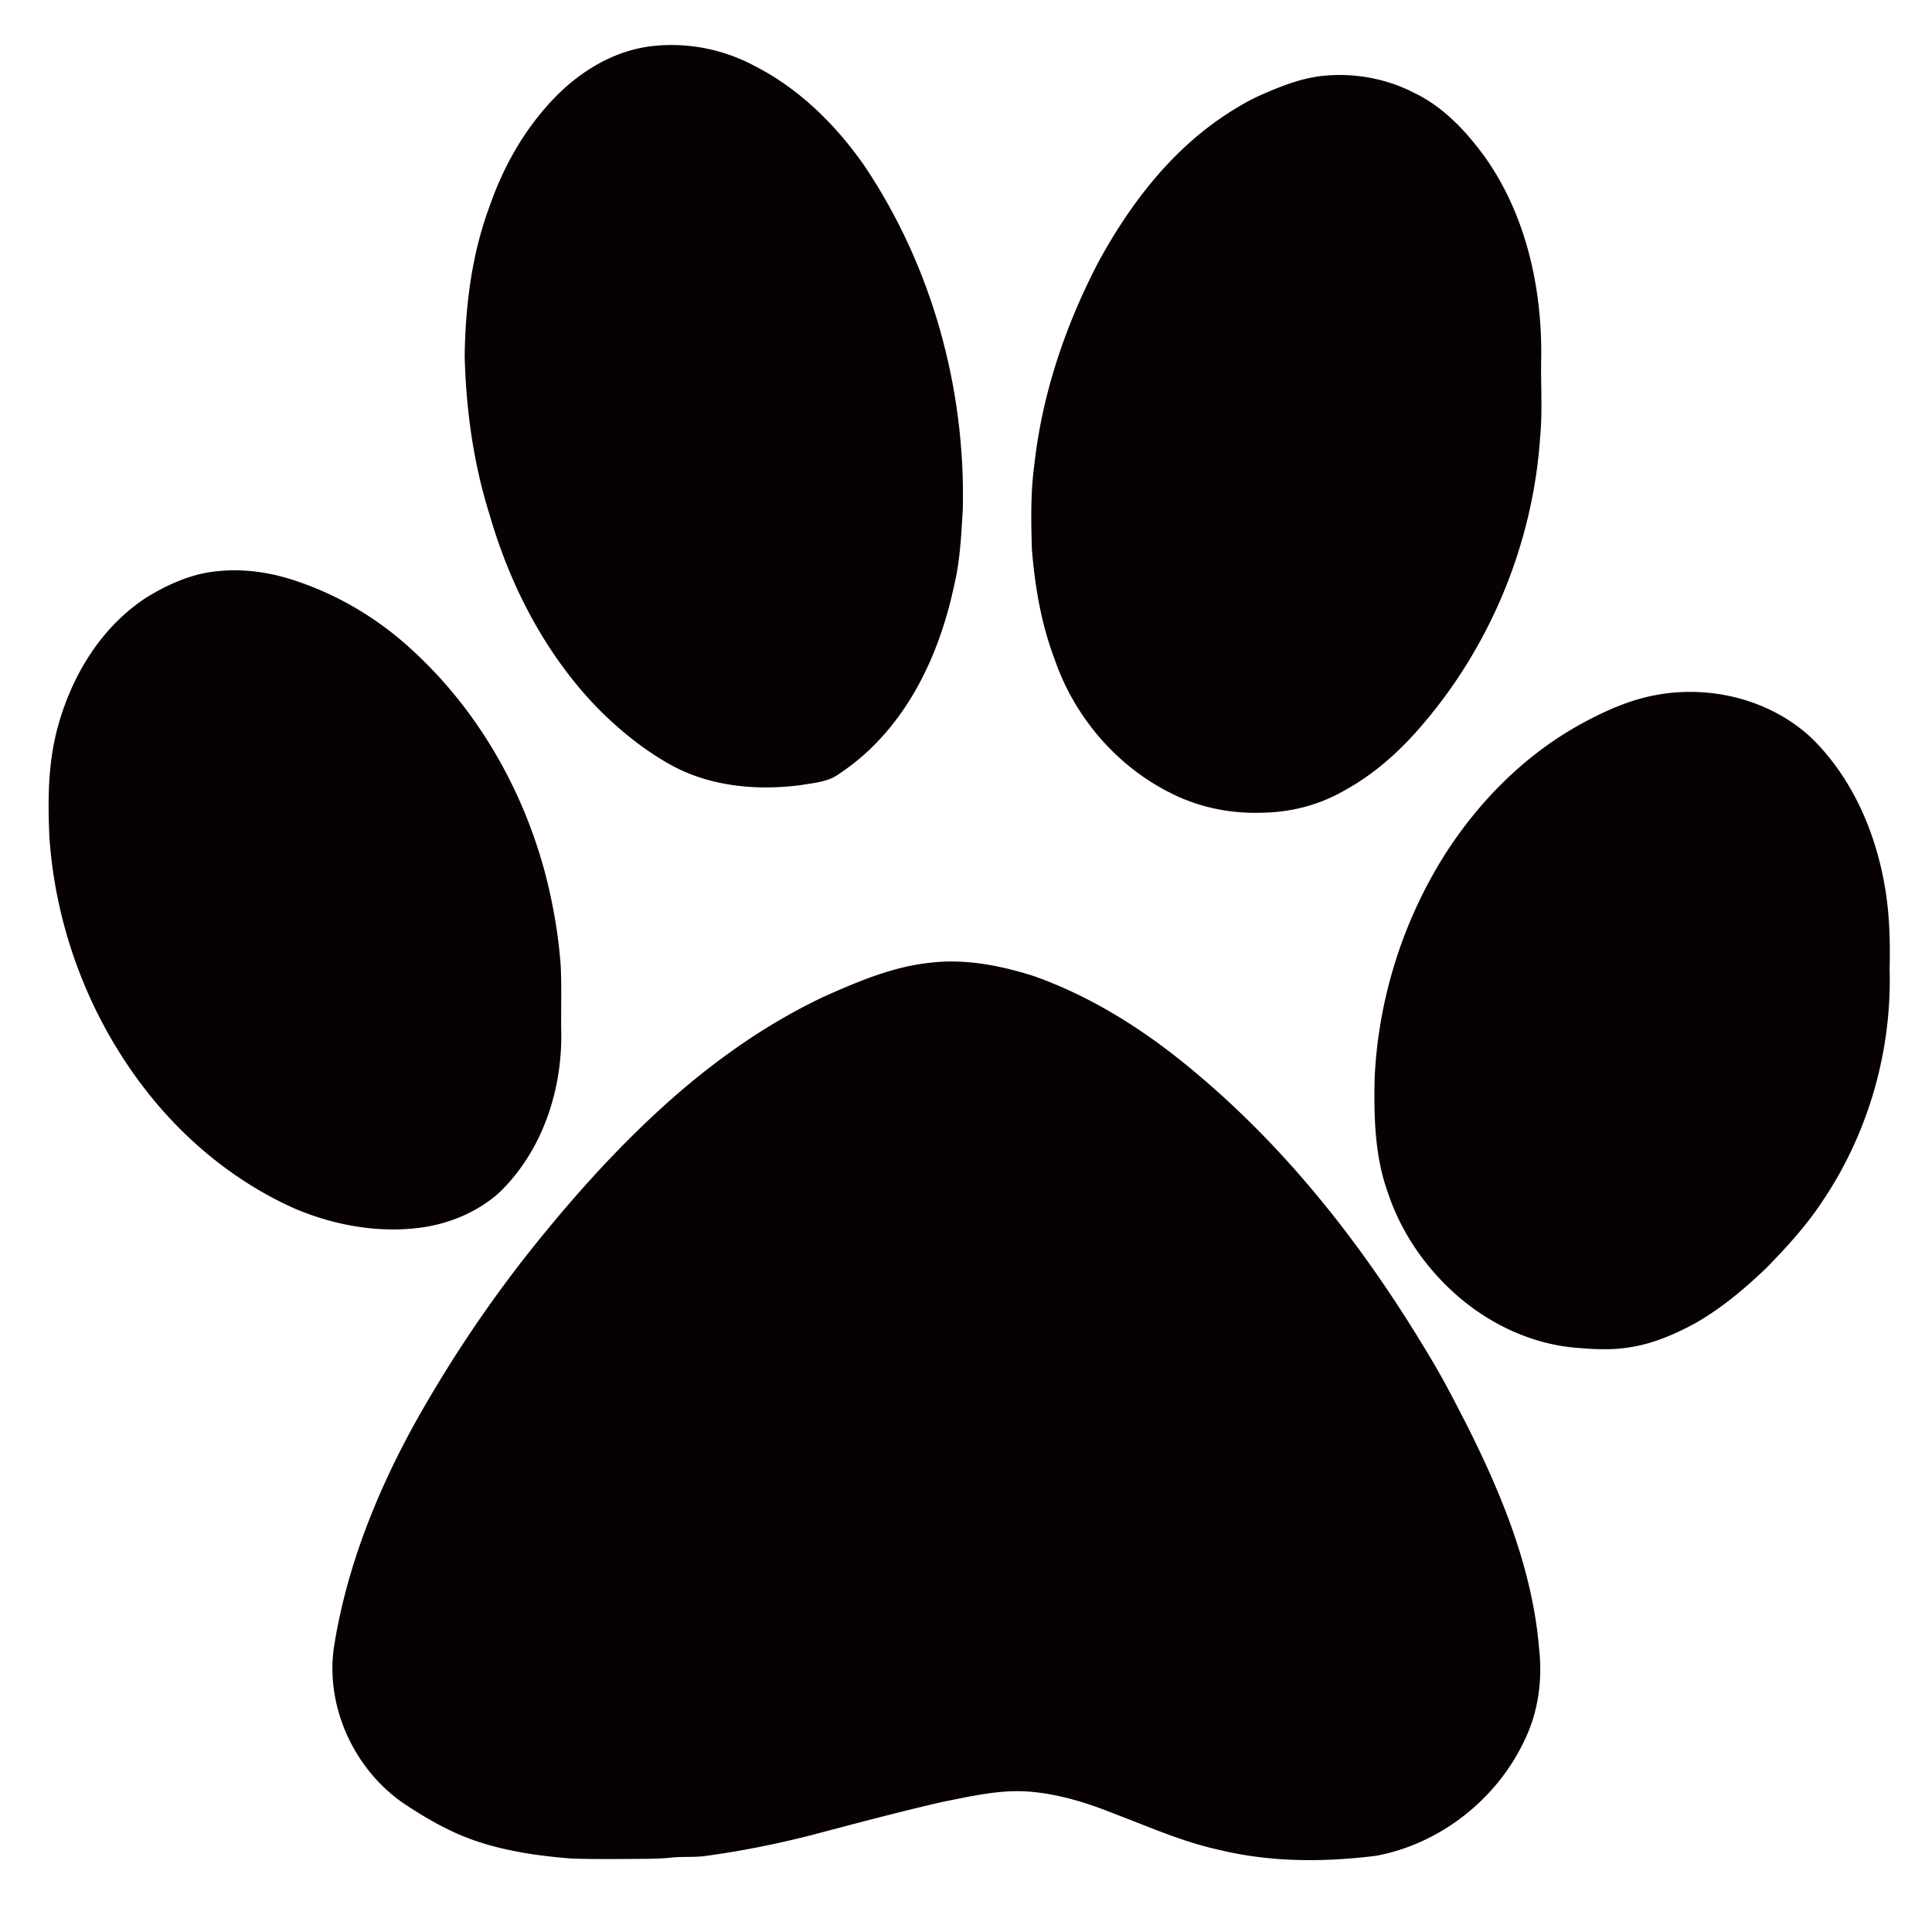 Excited clipart ng tao. Panther paw print clip